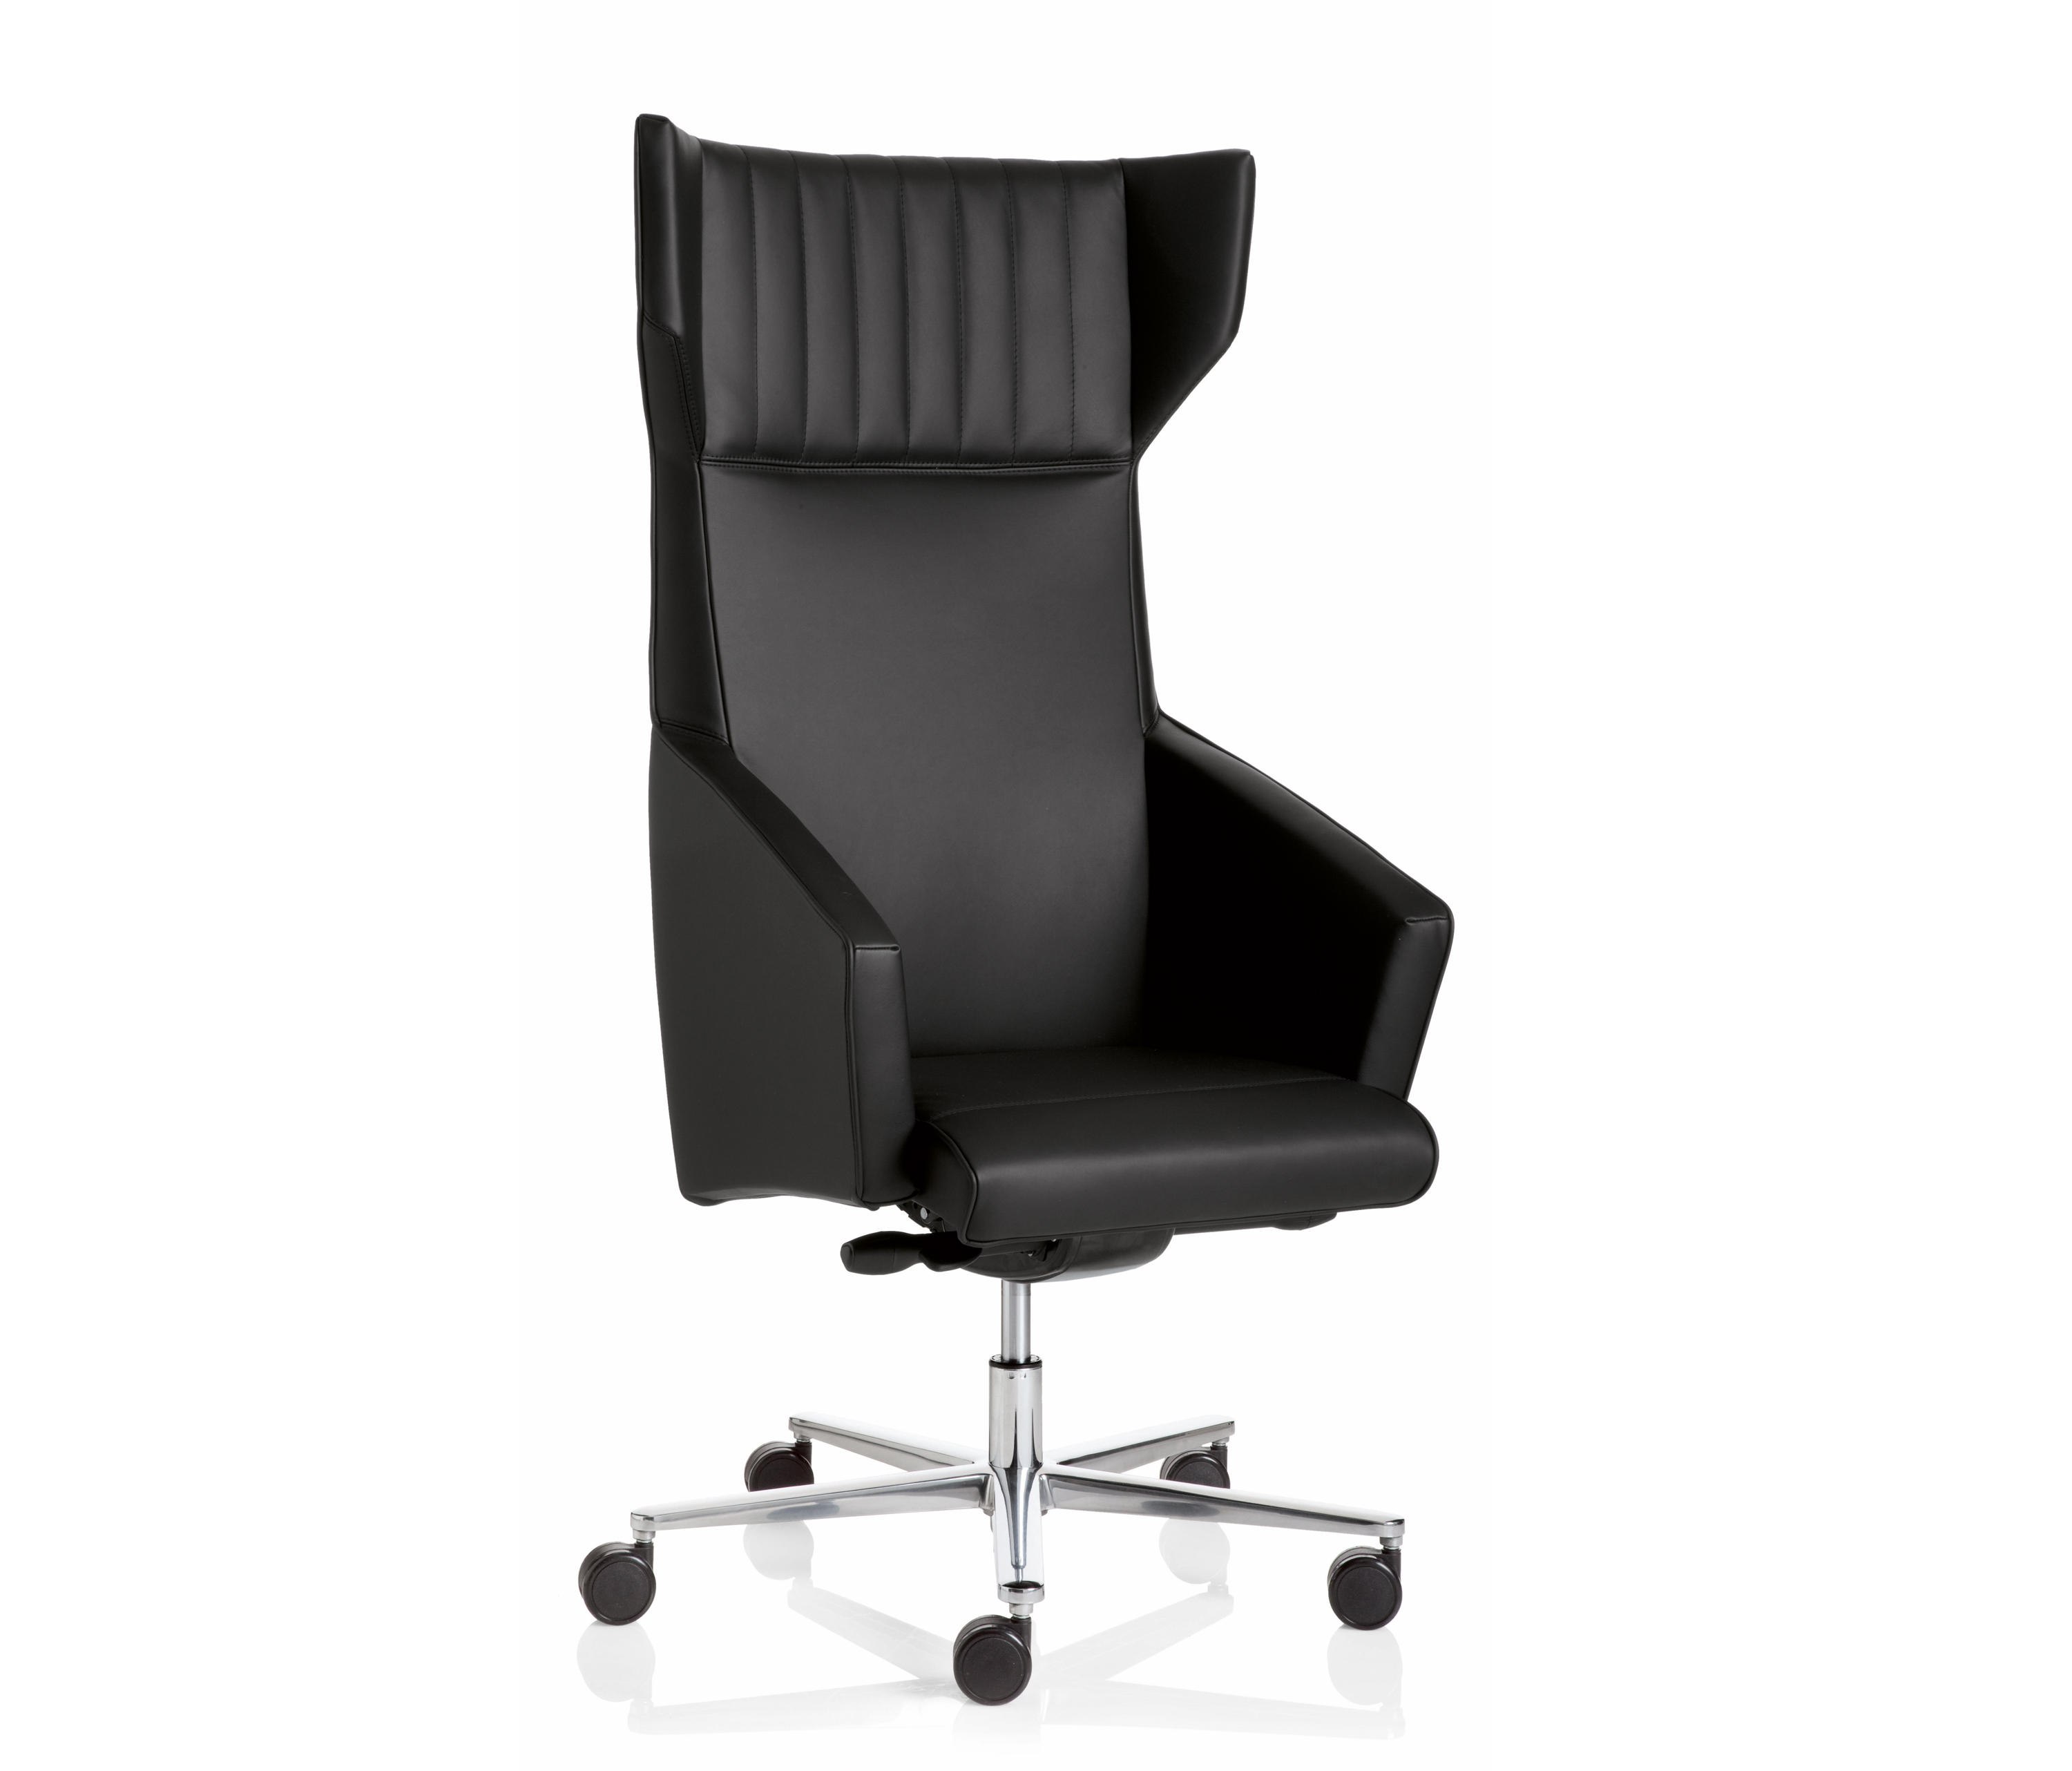 BUSINESS CLASS Executive chairs from Emmegi